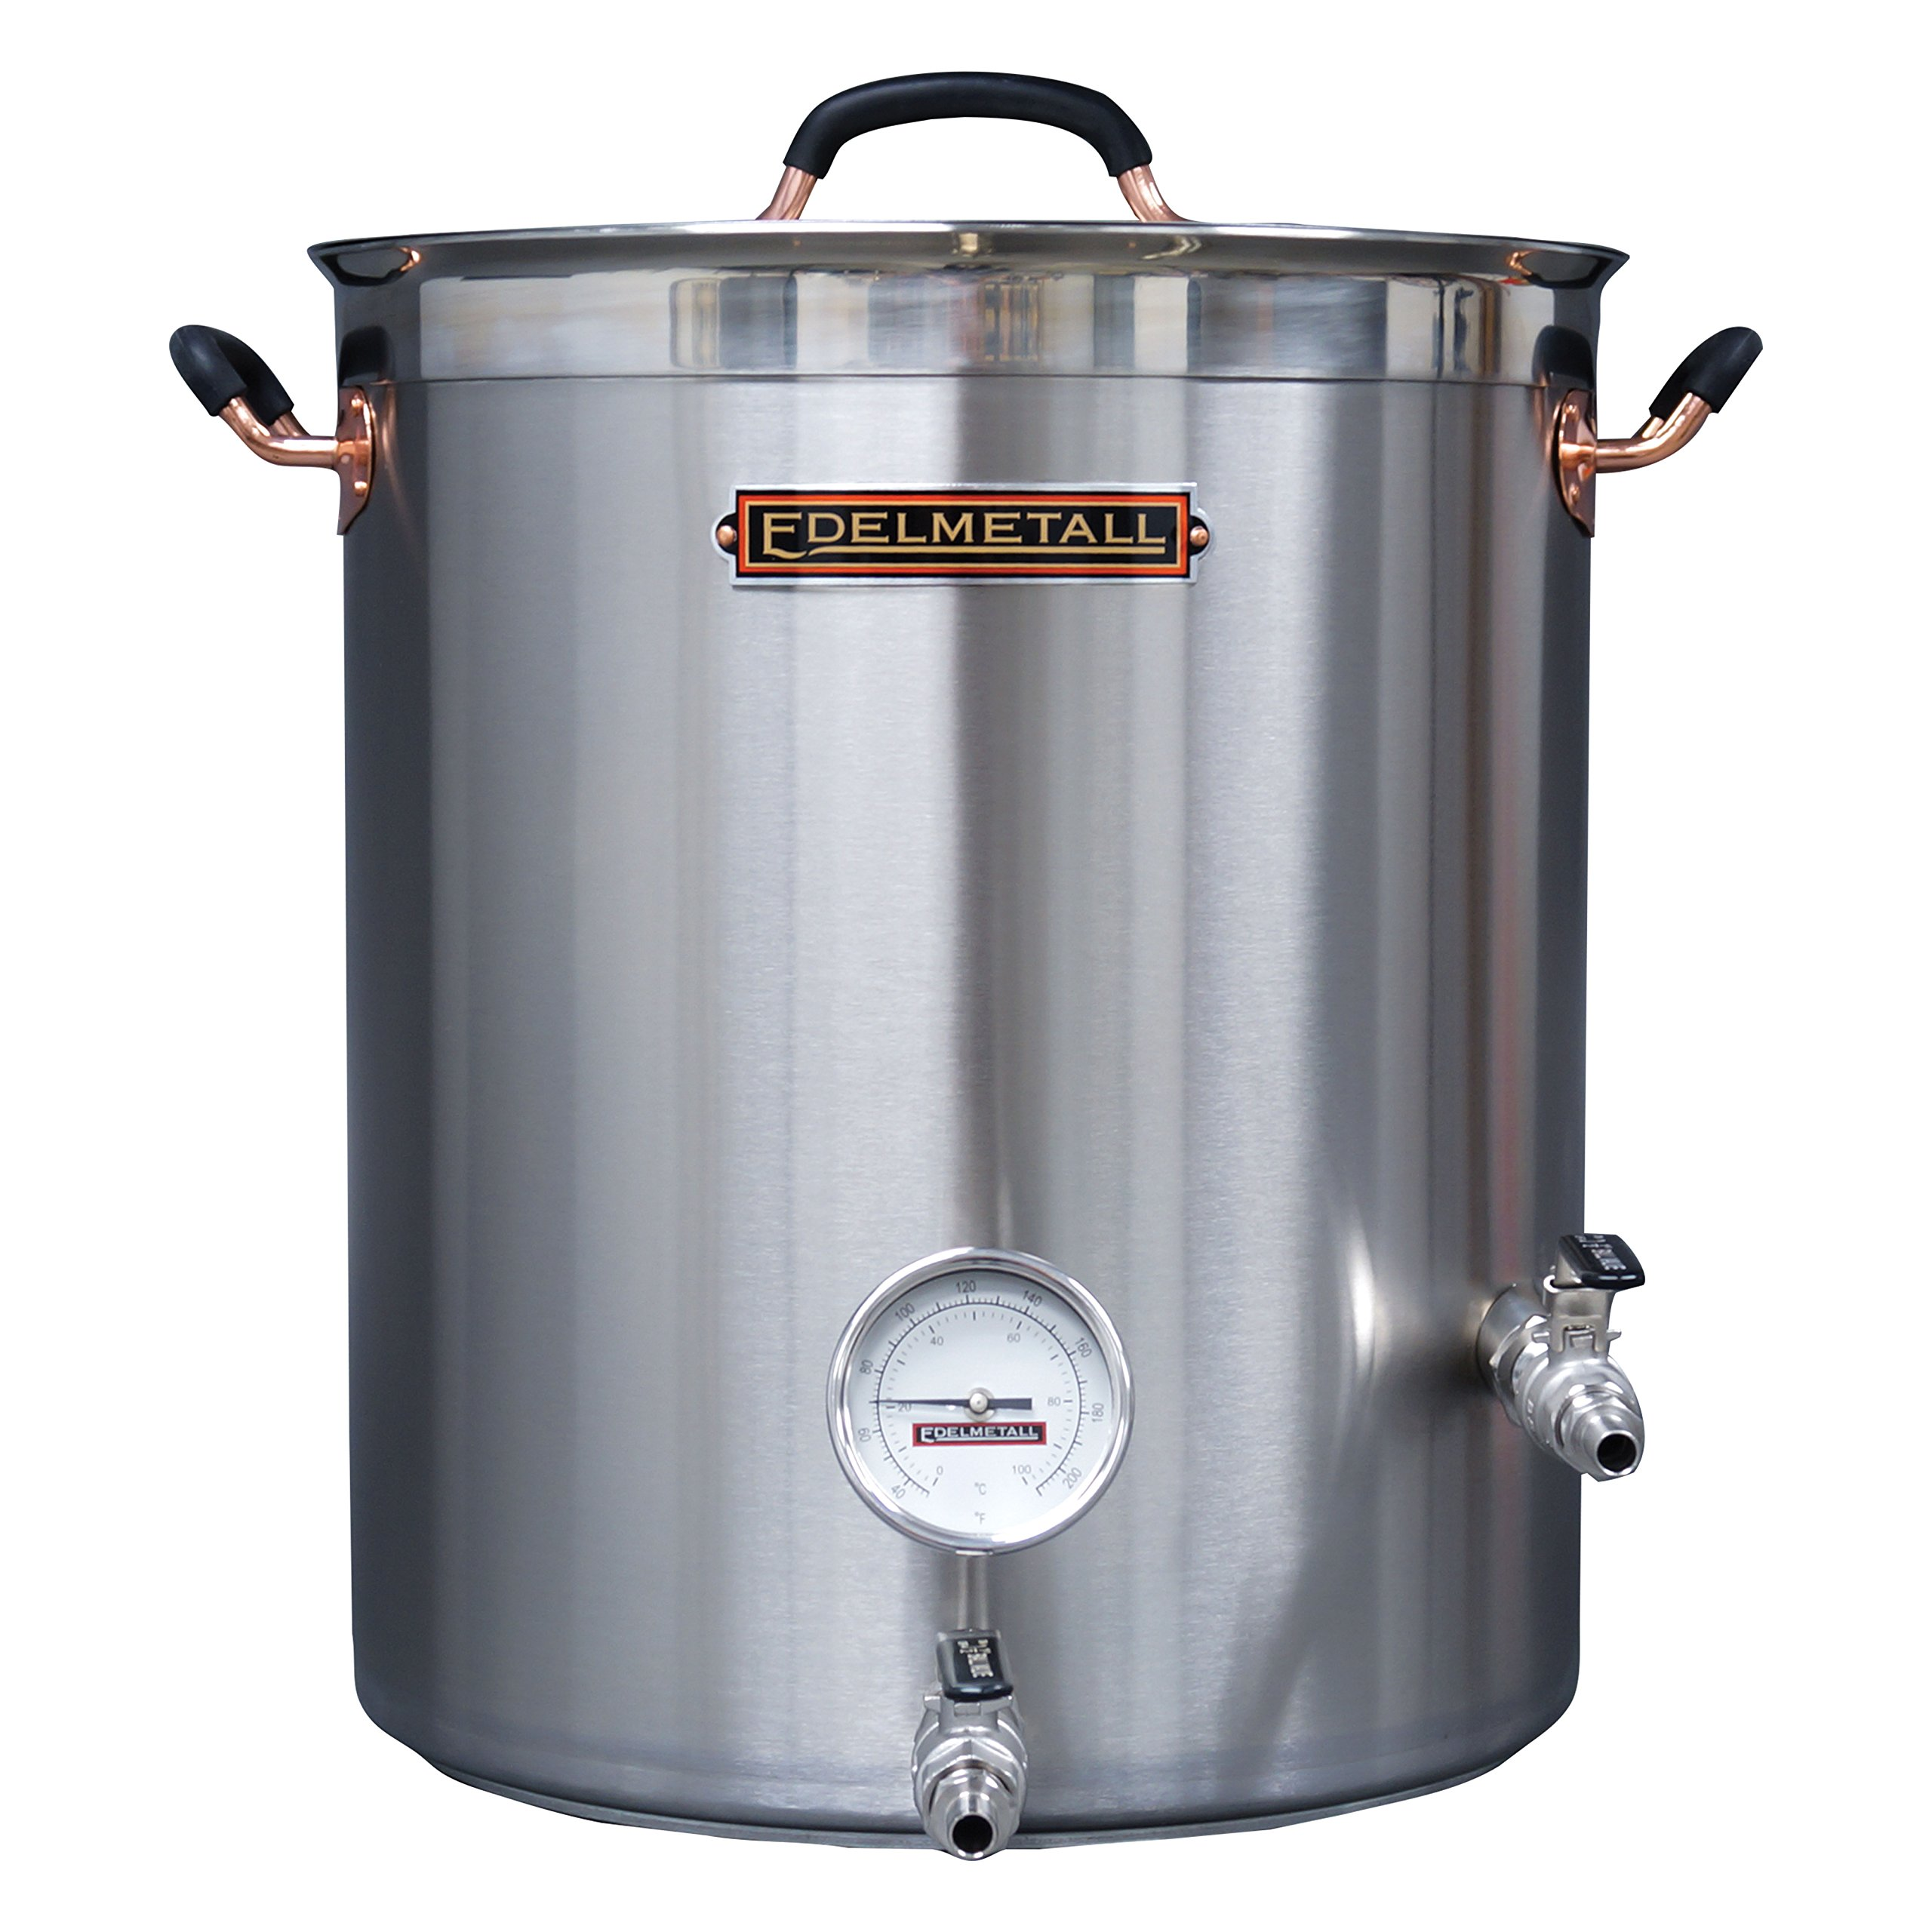 Northern Brewer - Edelmetall Bru Kettle Professional Quality Brew Kettle for Homebrewing with Valve Bulkhead, Whirlpool Port & Thermometer (15 Gallon)